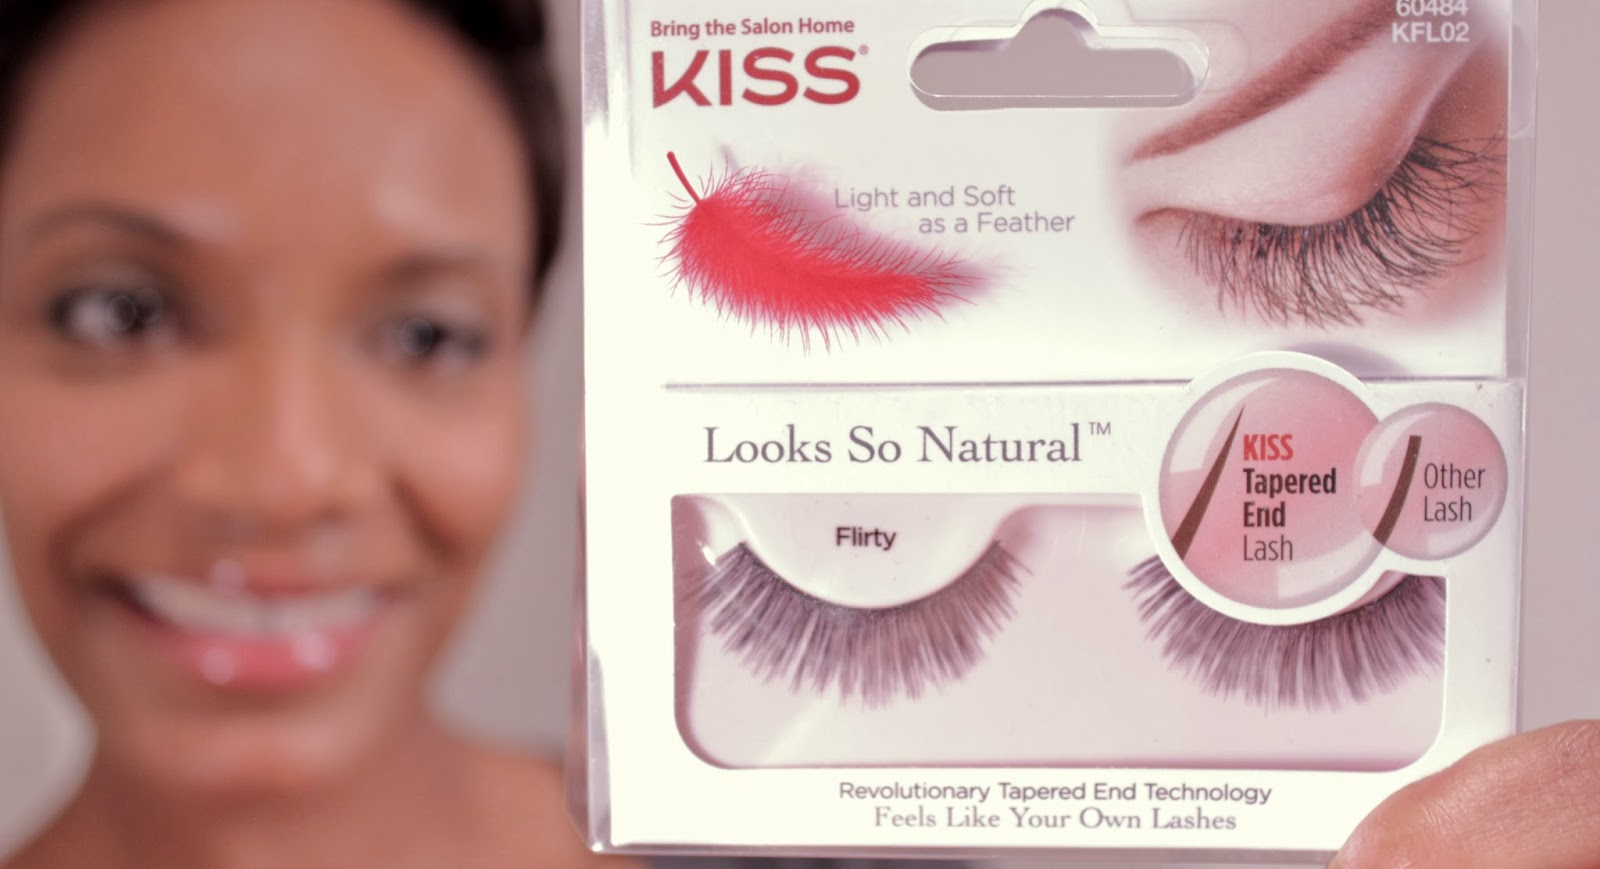 KISS Looks So Natural Flirty Lashes - No.#60484 (KFL02)